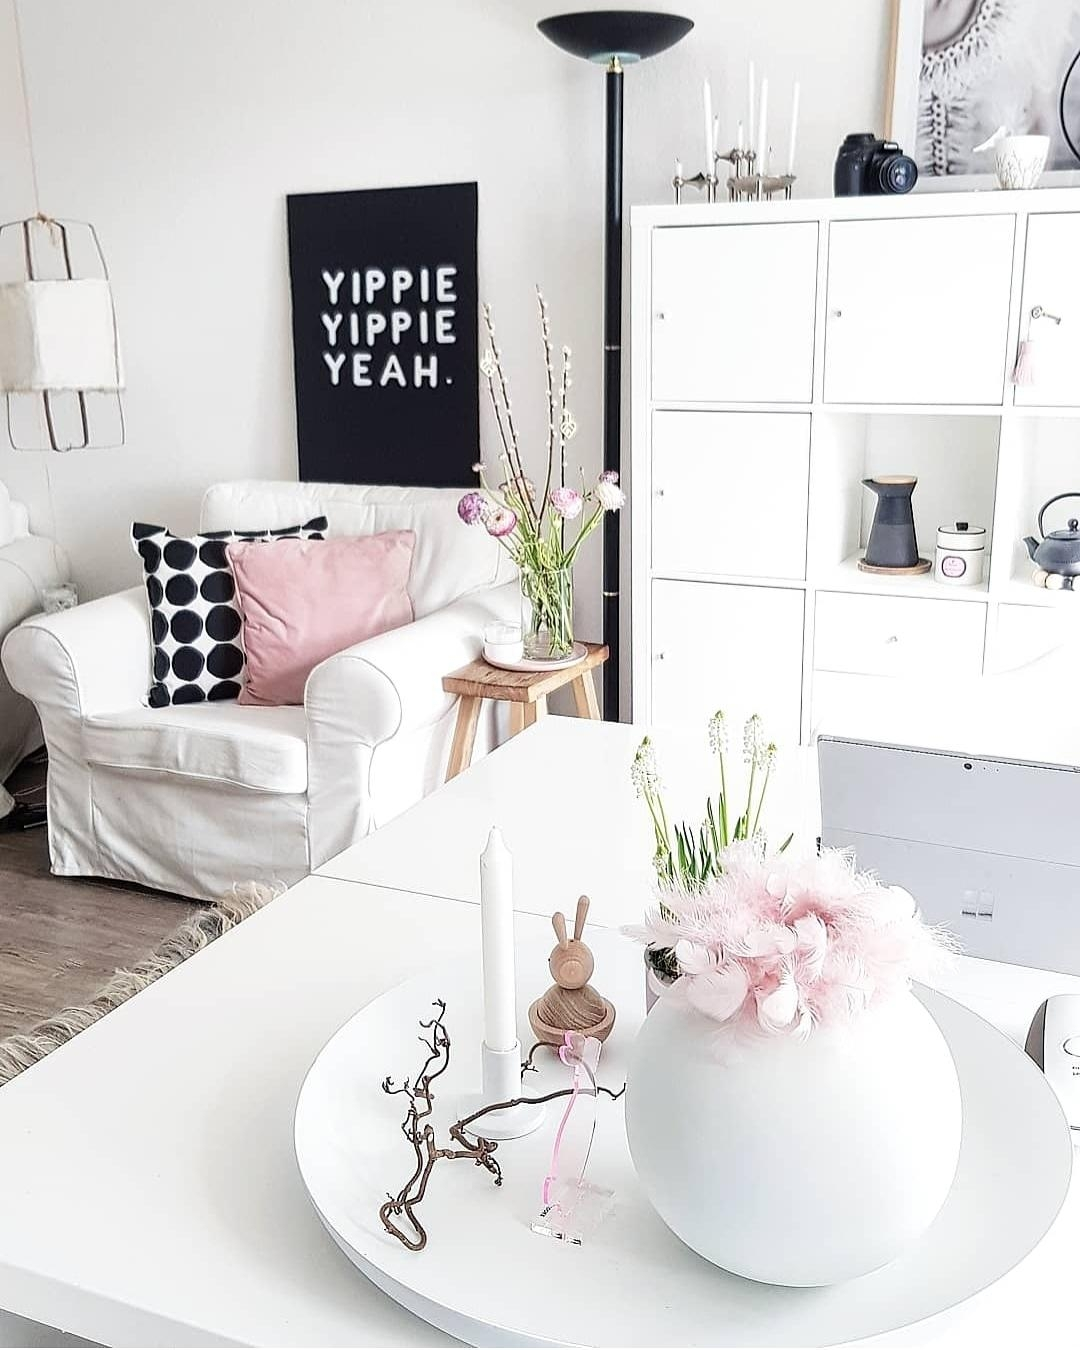 FRIYEAH 🥰 #freshflowerfriday #weekend #whiteliving #interior #white #rosa#pastel #spring